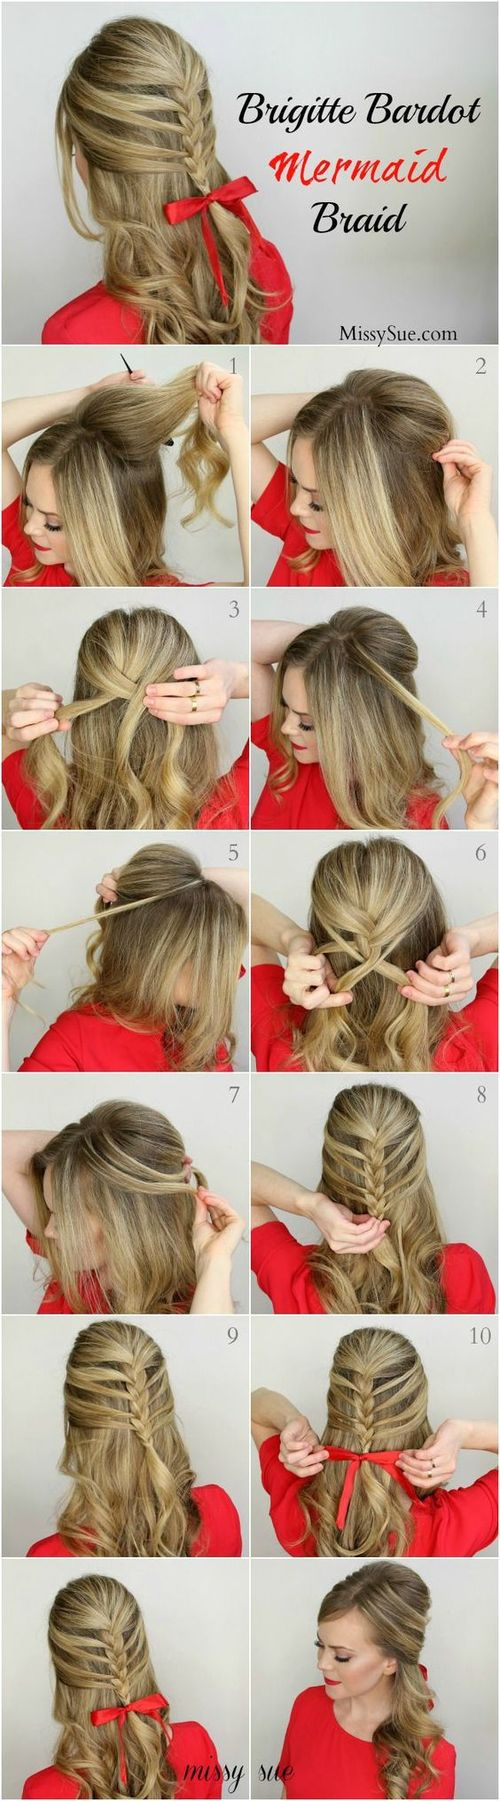 The best hairstyles for mermaid braid and hair style